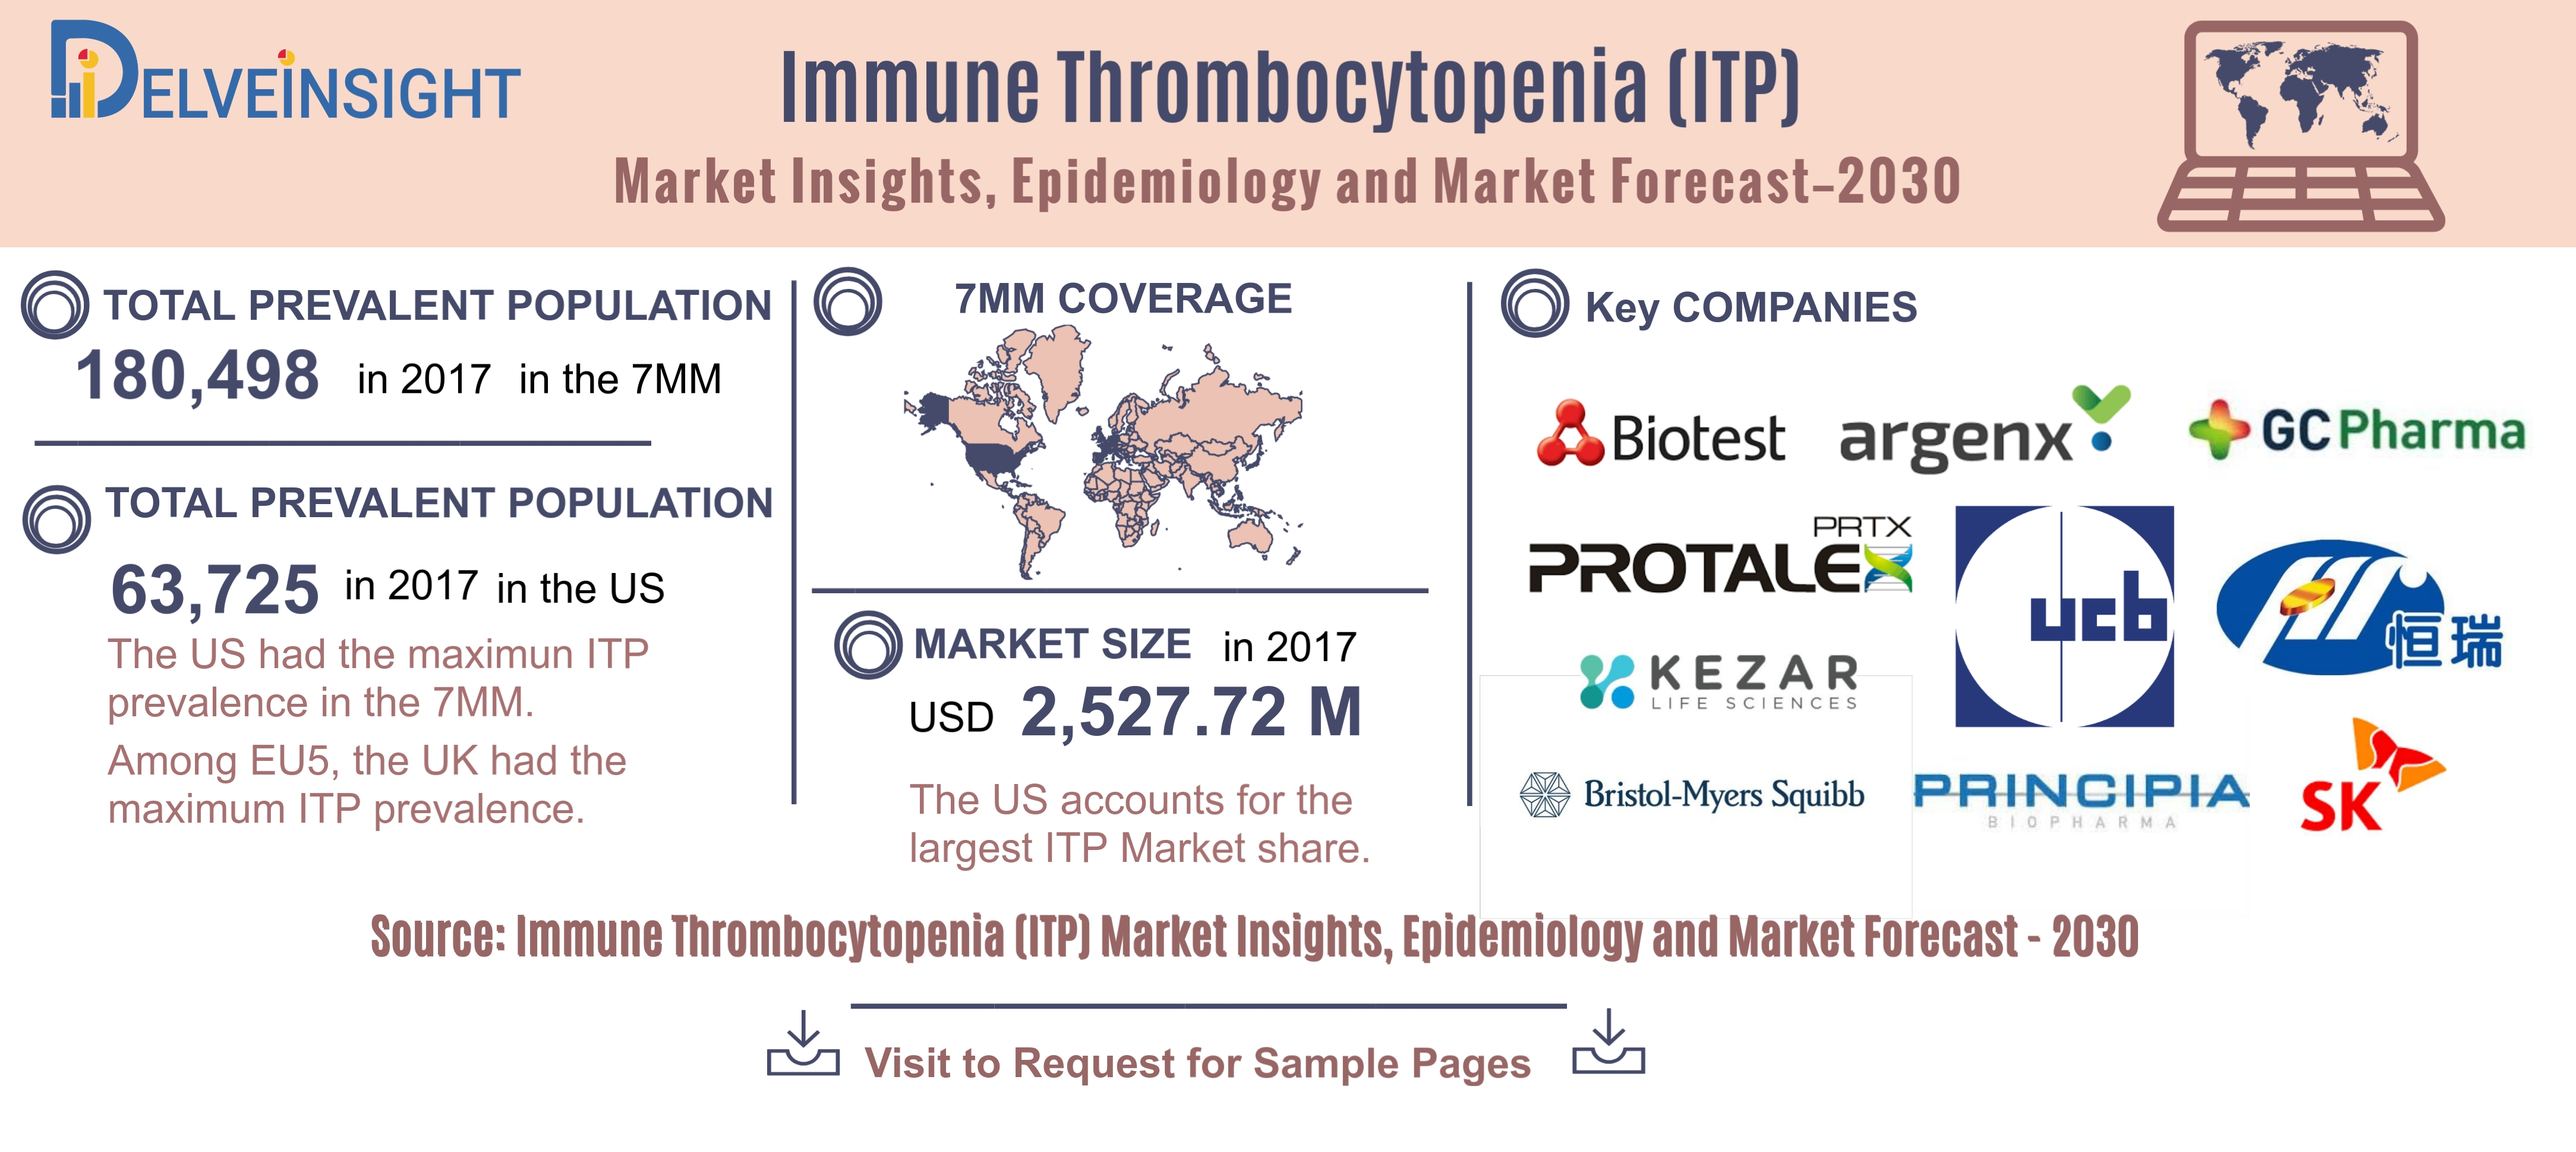 Immune thrombocytopenia Pipeline: Upcoming therapies to watch out for in the next decade